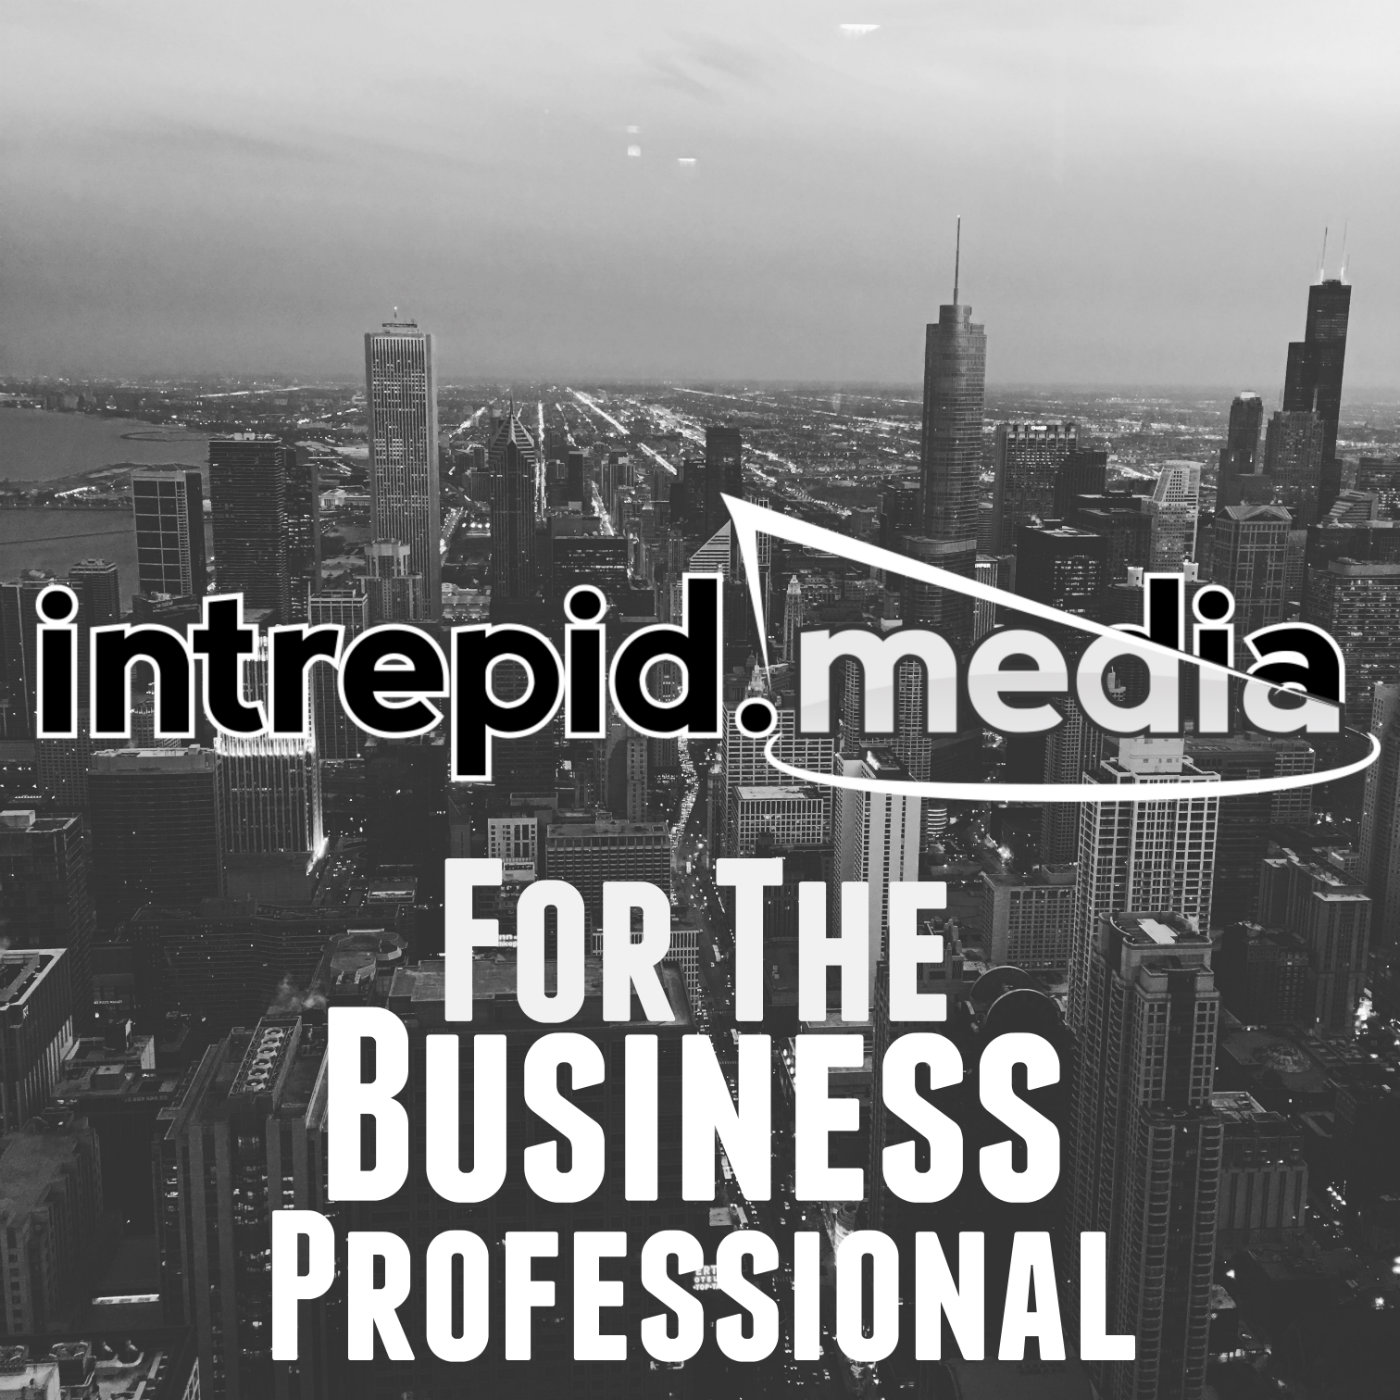 intrepid.MEDIA